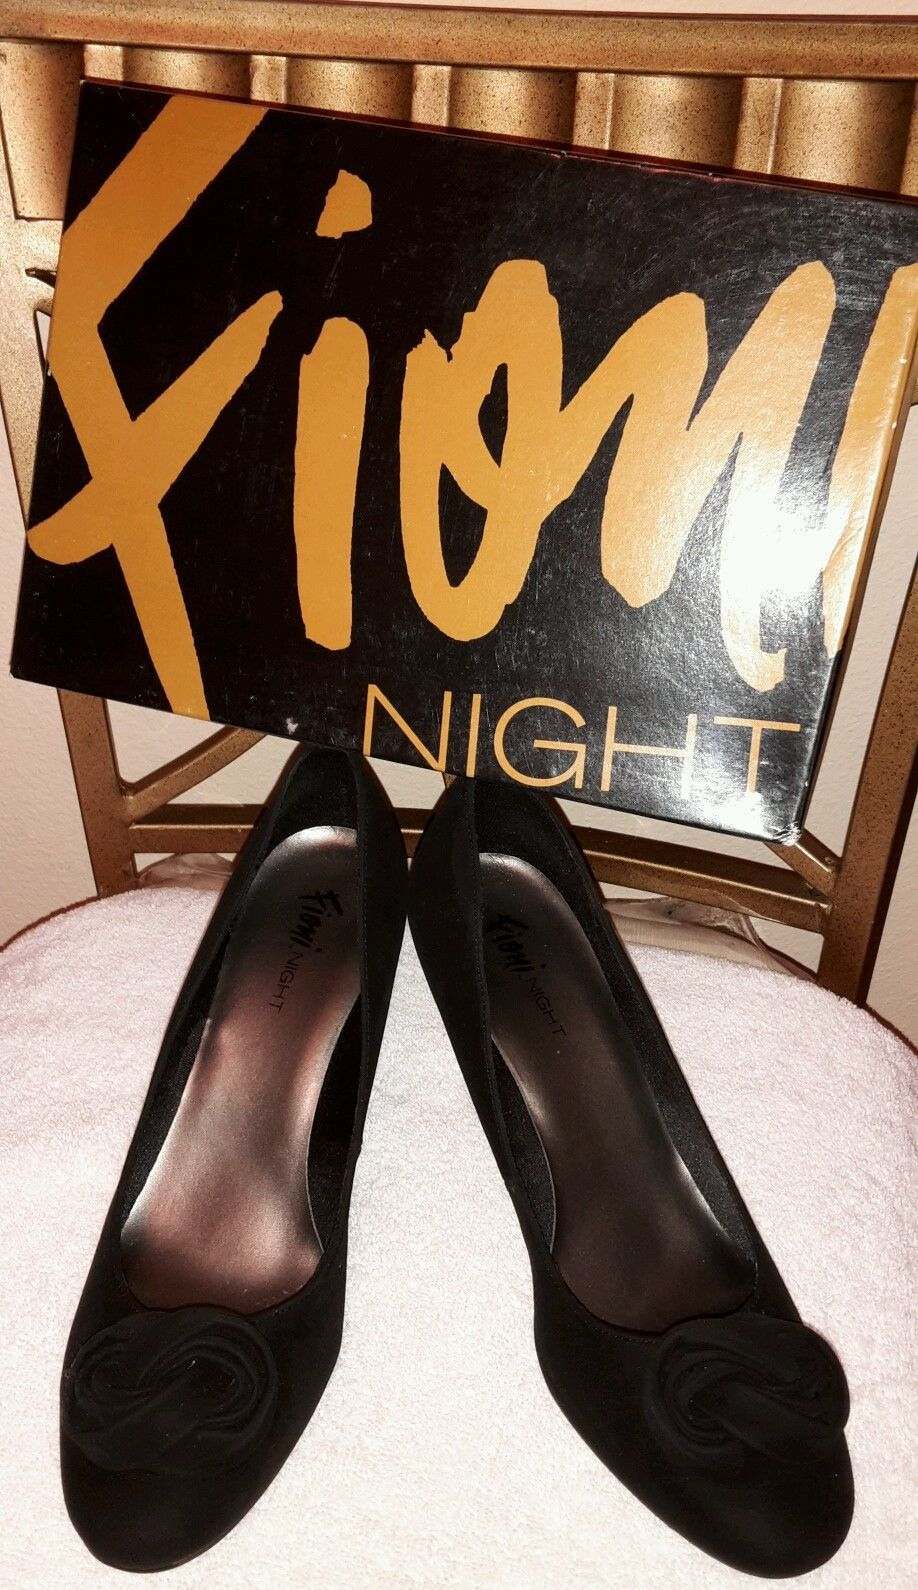 "Primary image for FIONI NIGHT STILLETTOS HEELS BLACK 2"" SOLID Synthetic, WOMEN US Shoe Size: 11MB"